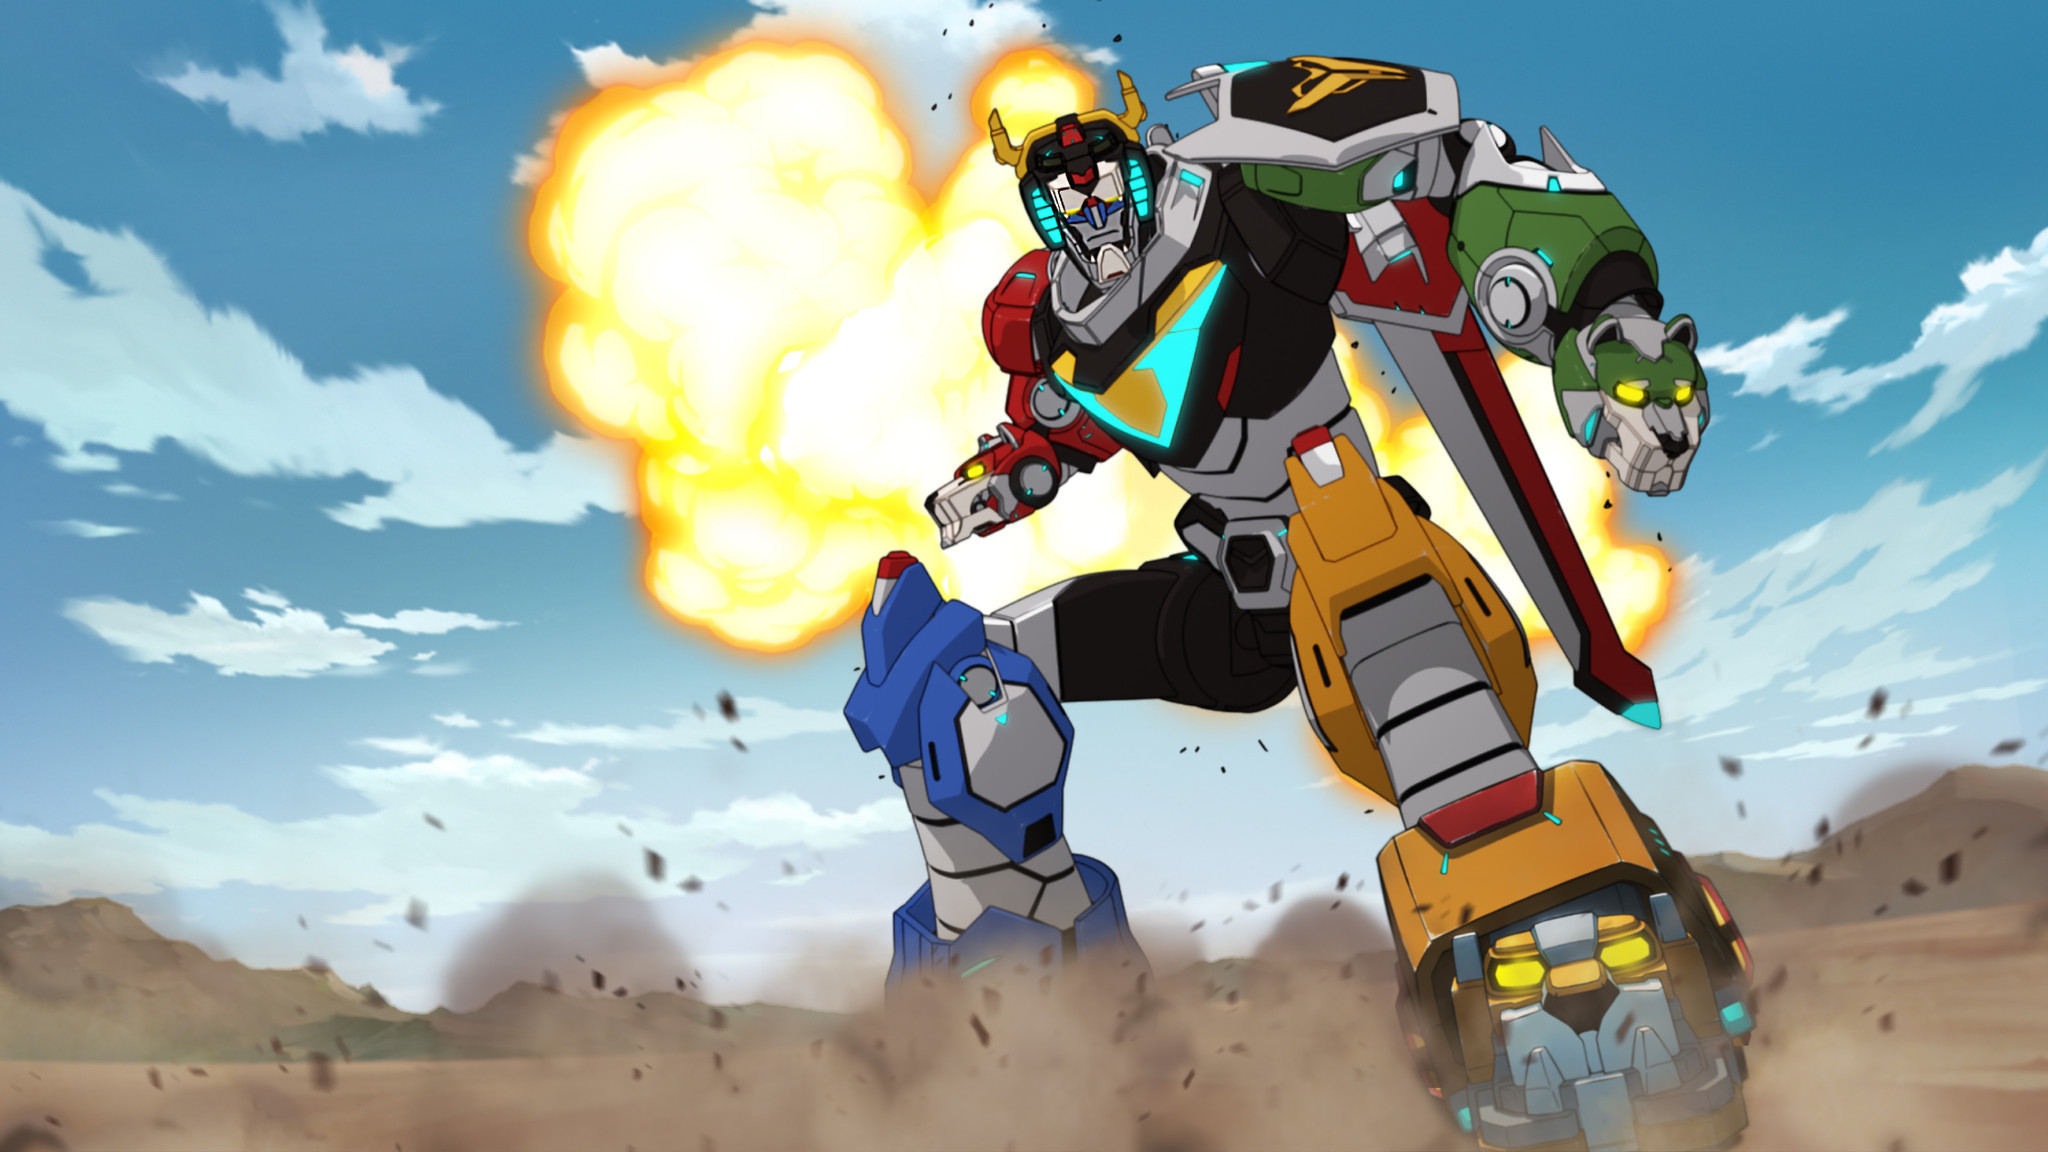 Voltron gets an updated look in